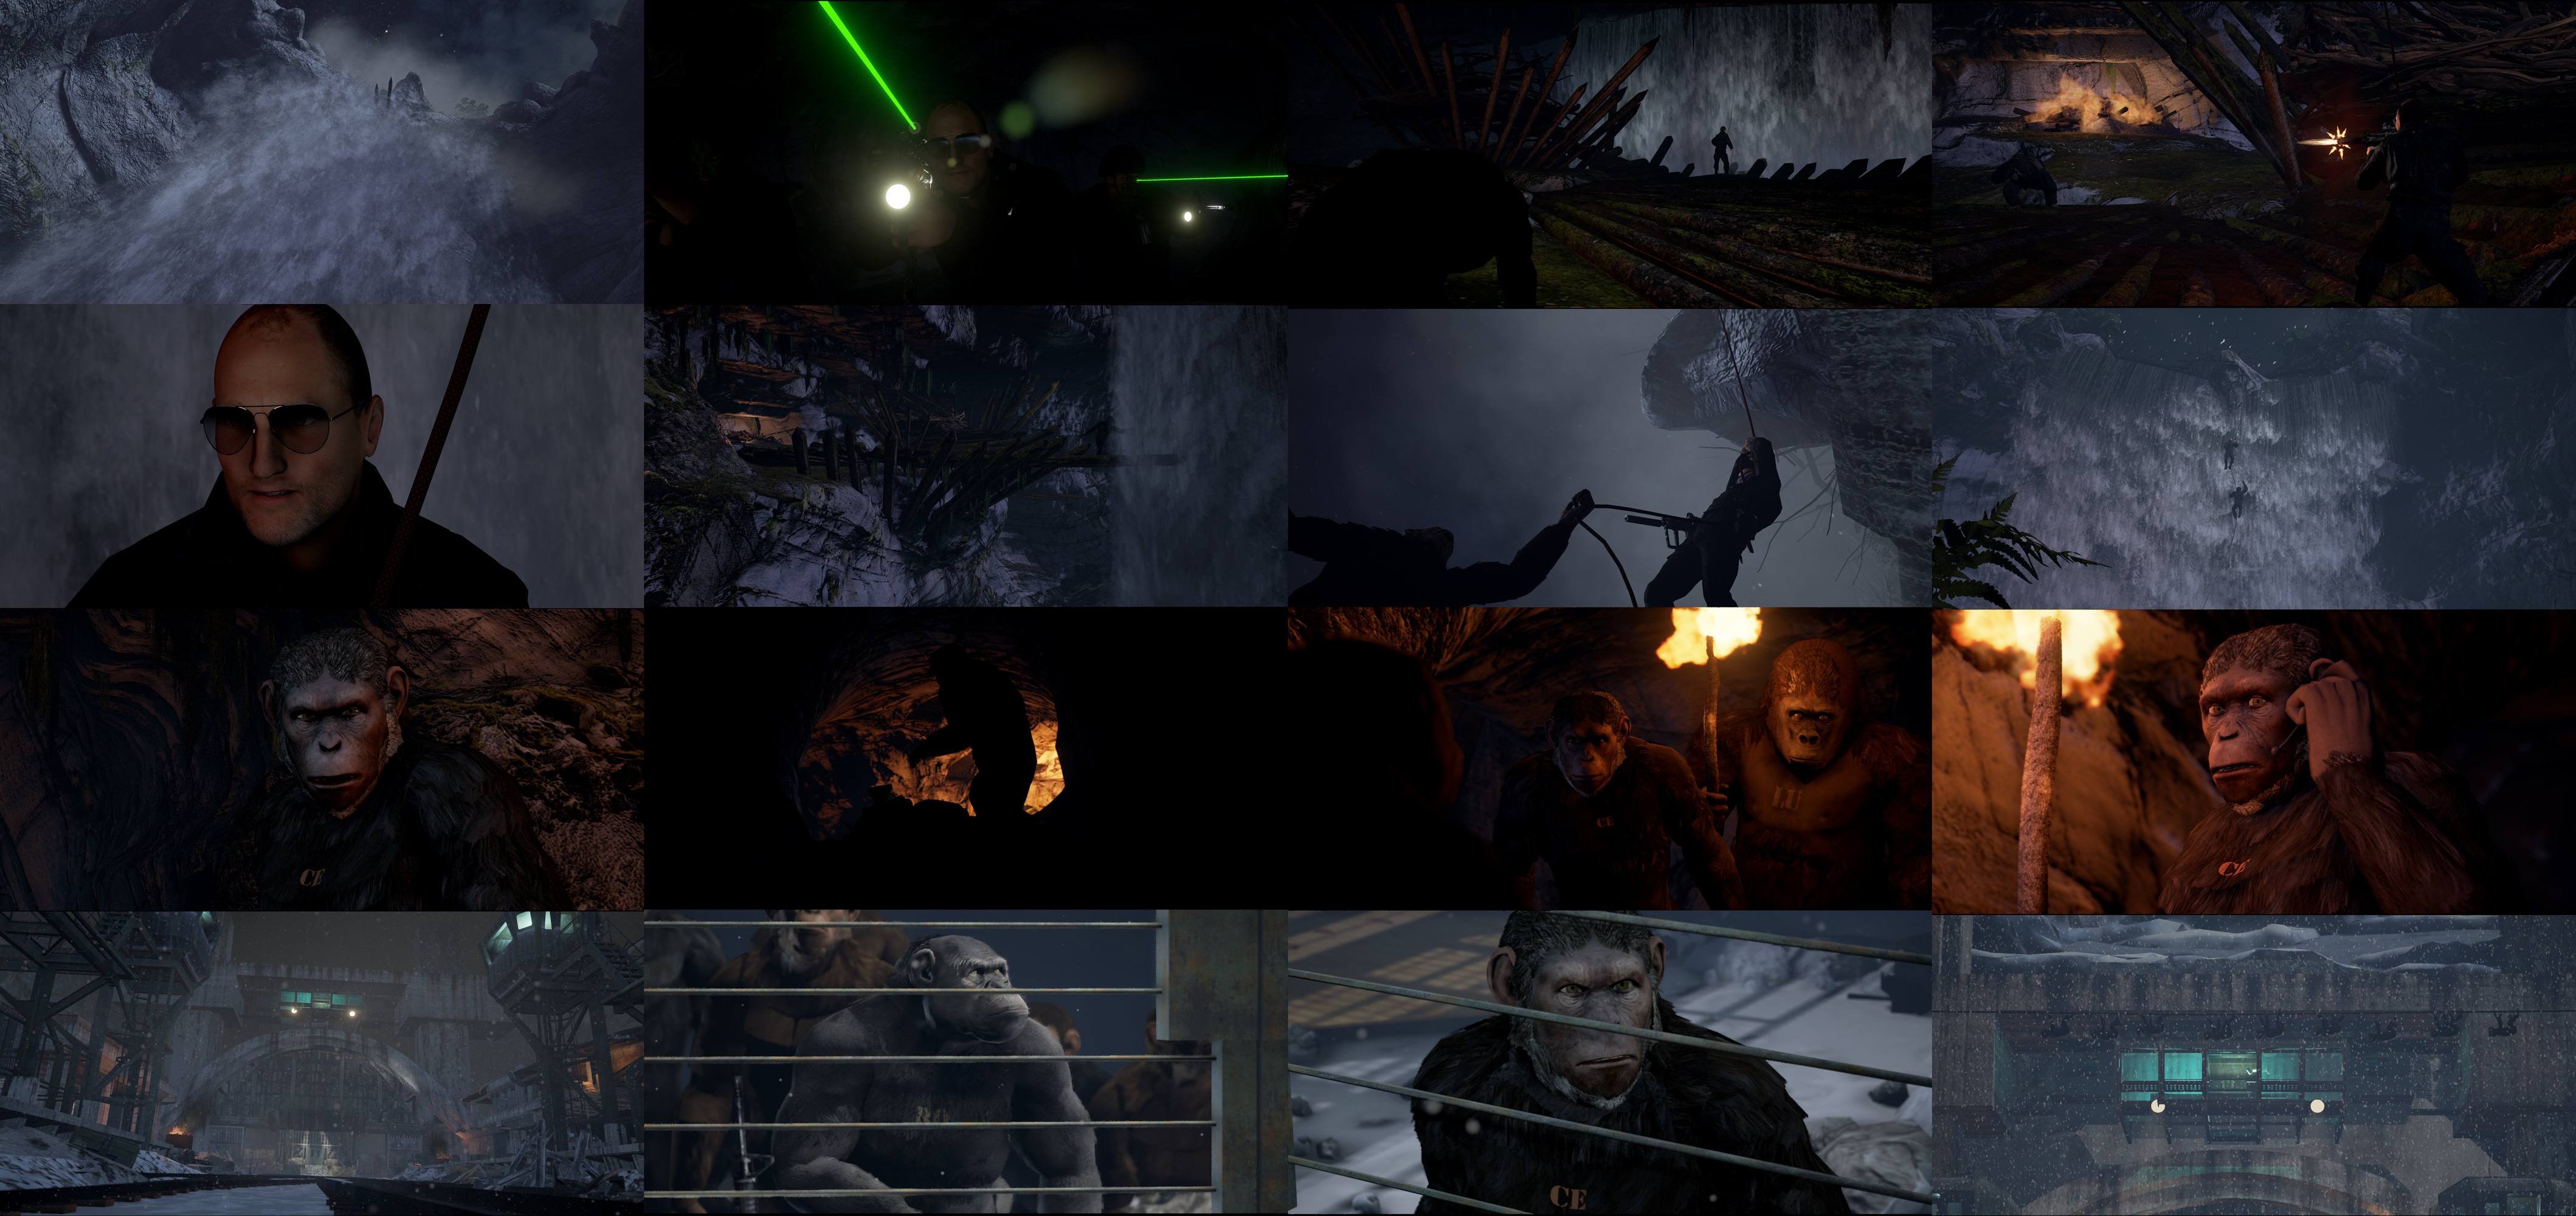 Acting as Unreal Engine Lead I created models, VFX, shaders lighting and animation for previs sequences on set of War for the Planet of the Apes. Realtime render in Unreal4